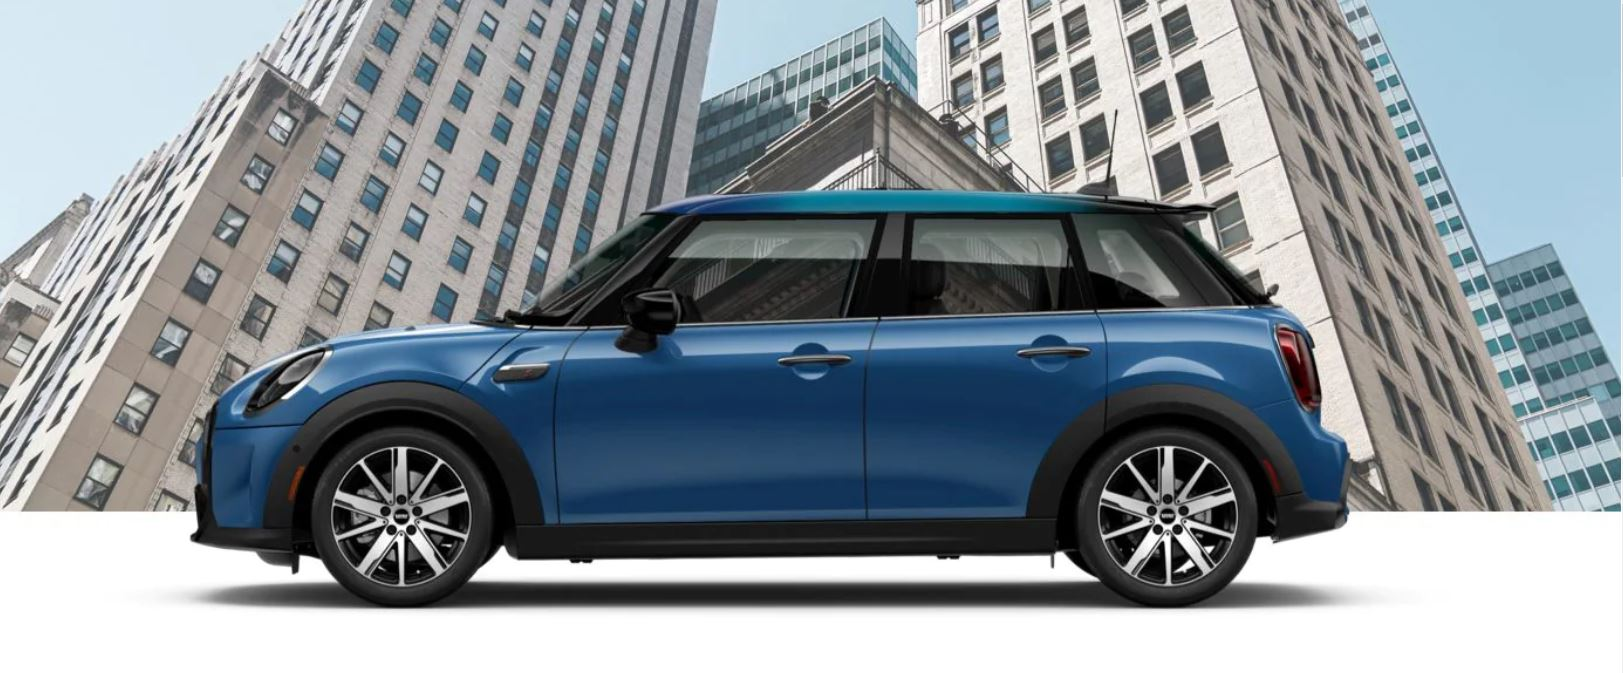 MINI The 2022 MINI Hardtop 4 Door parked in front of a 3D geometric background.